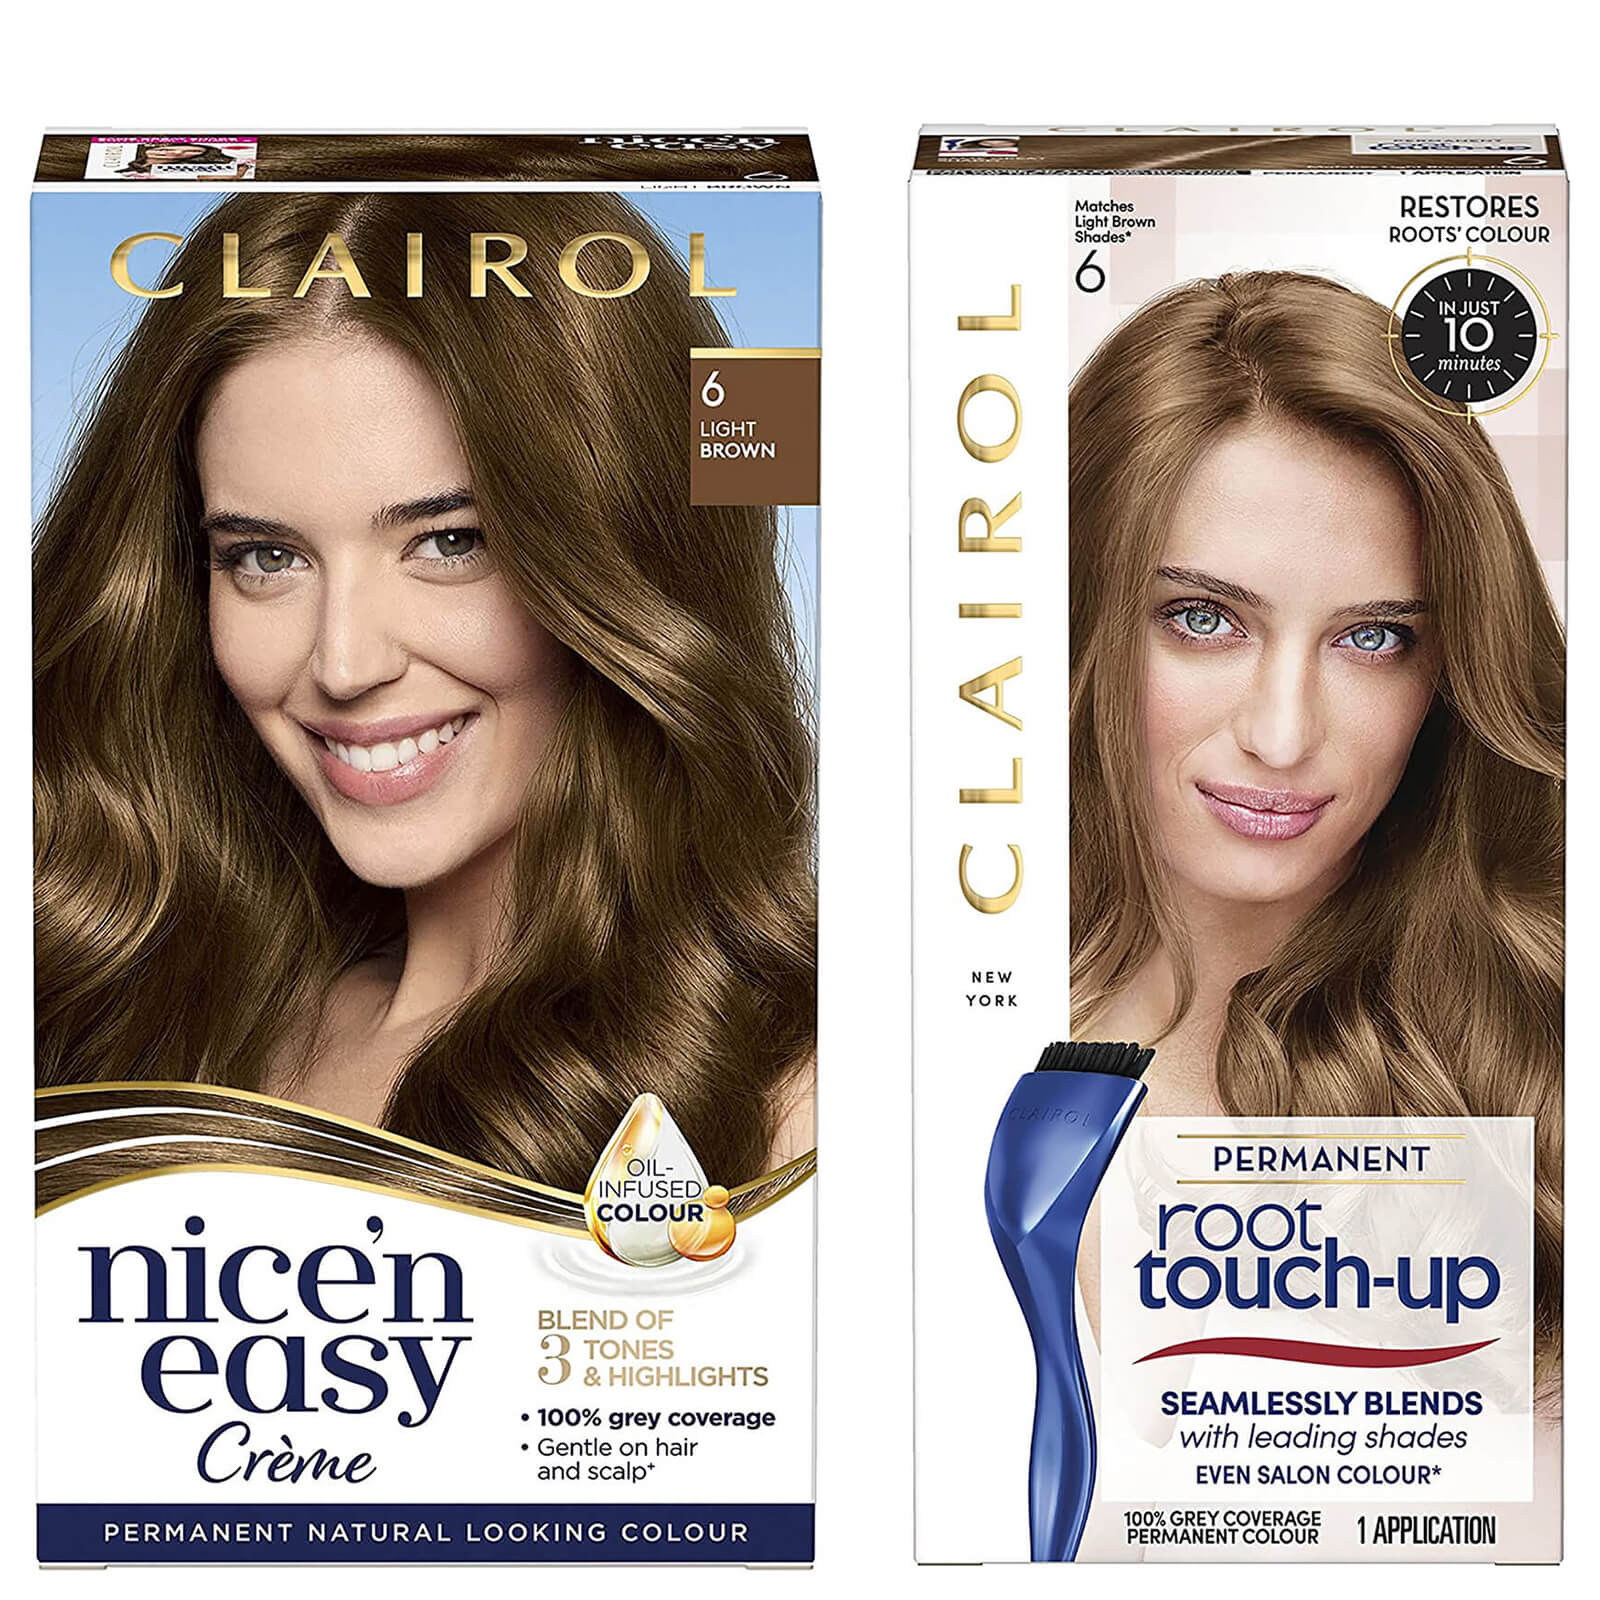 Clairol Nice' n Easy Permanent Hair Dye and Root Touch up Duo (Various Shades) - 6 Light Brown